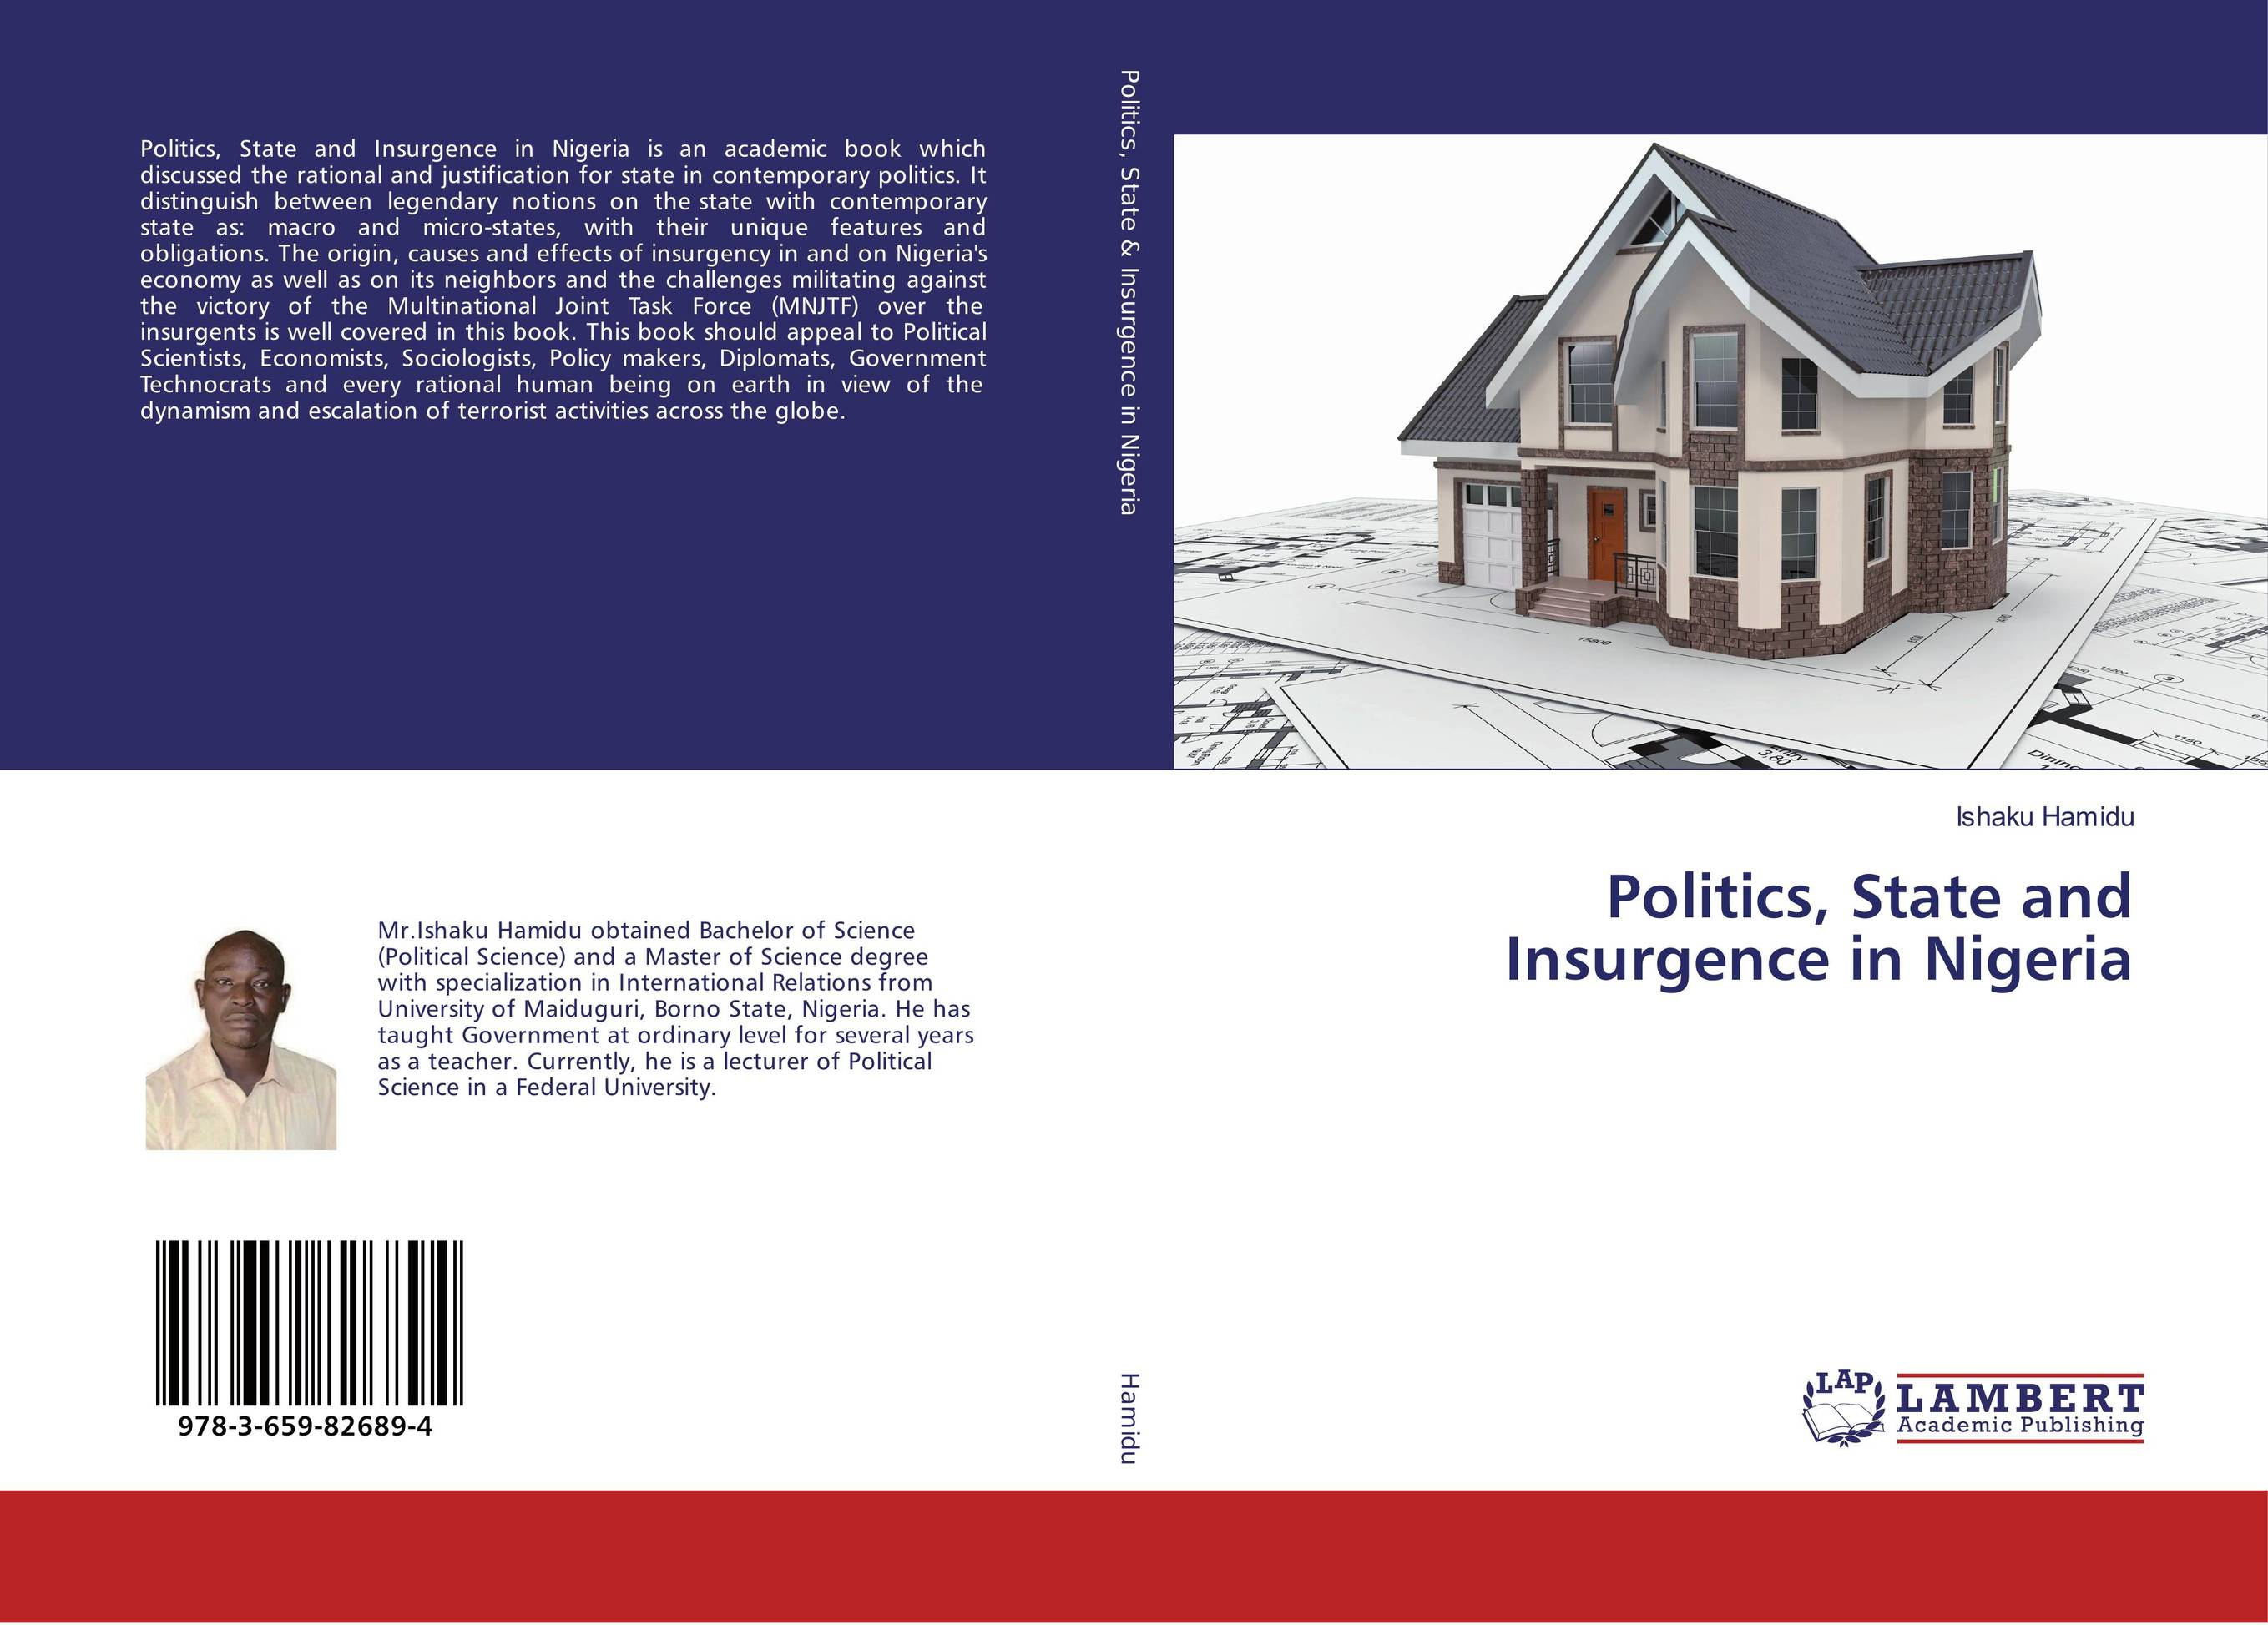 Politics, State and Insurgence in Nigeria